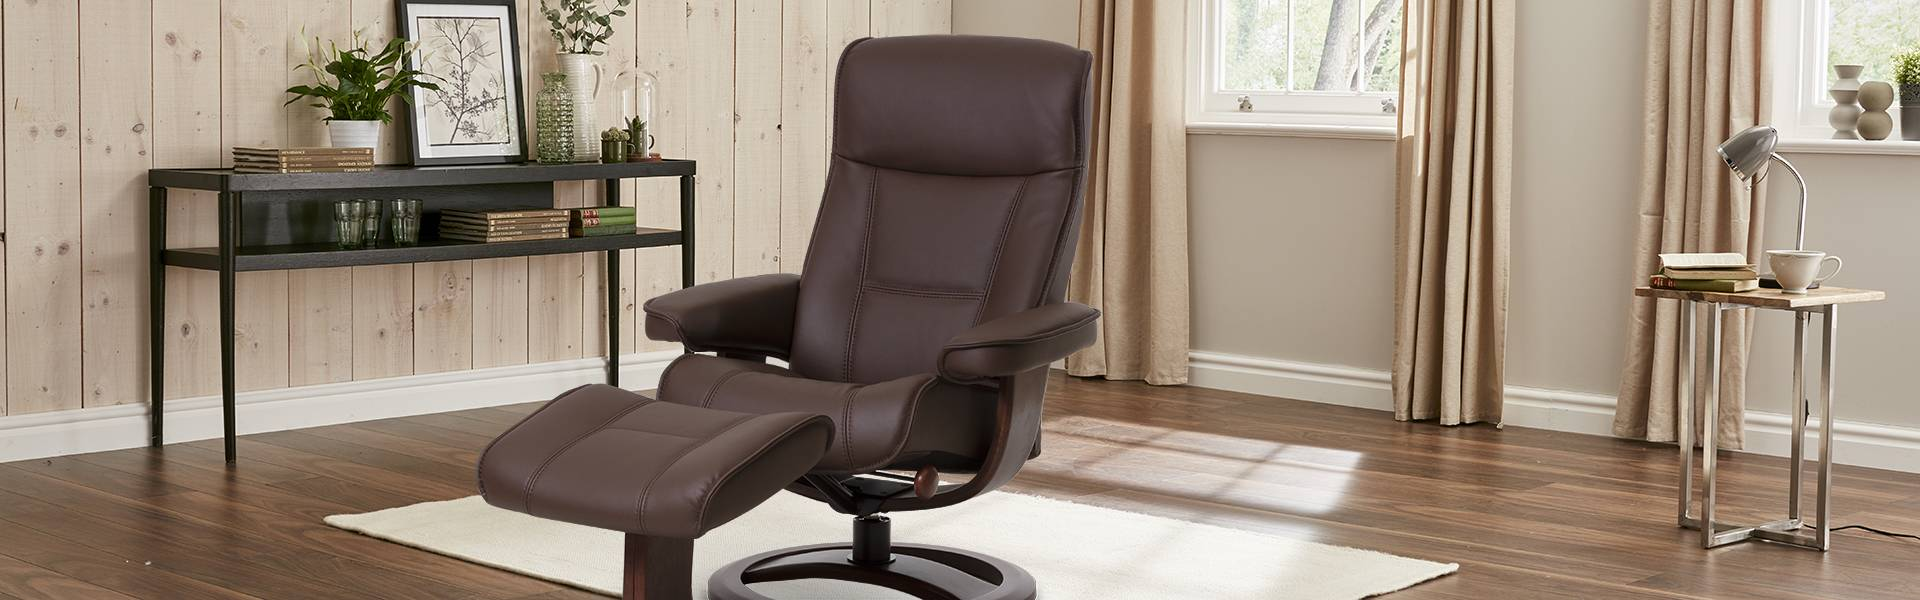 posture care chair adelaide gumtree wayfair adirondack cushions recliners orthopaedic chairs enna recliner ercol furniture reclining leather swivel armchairs with footstool